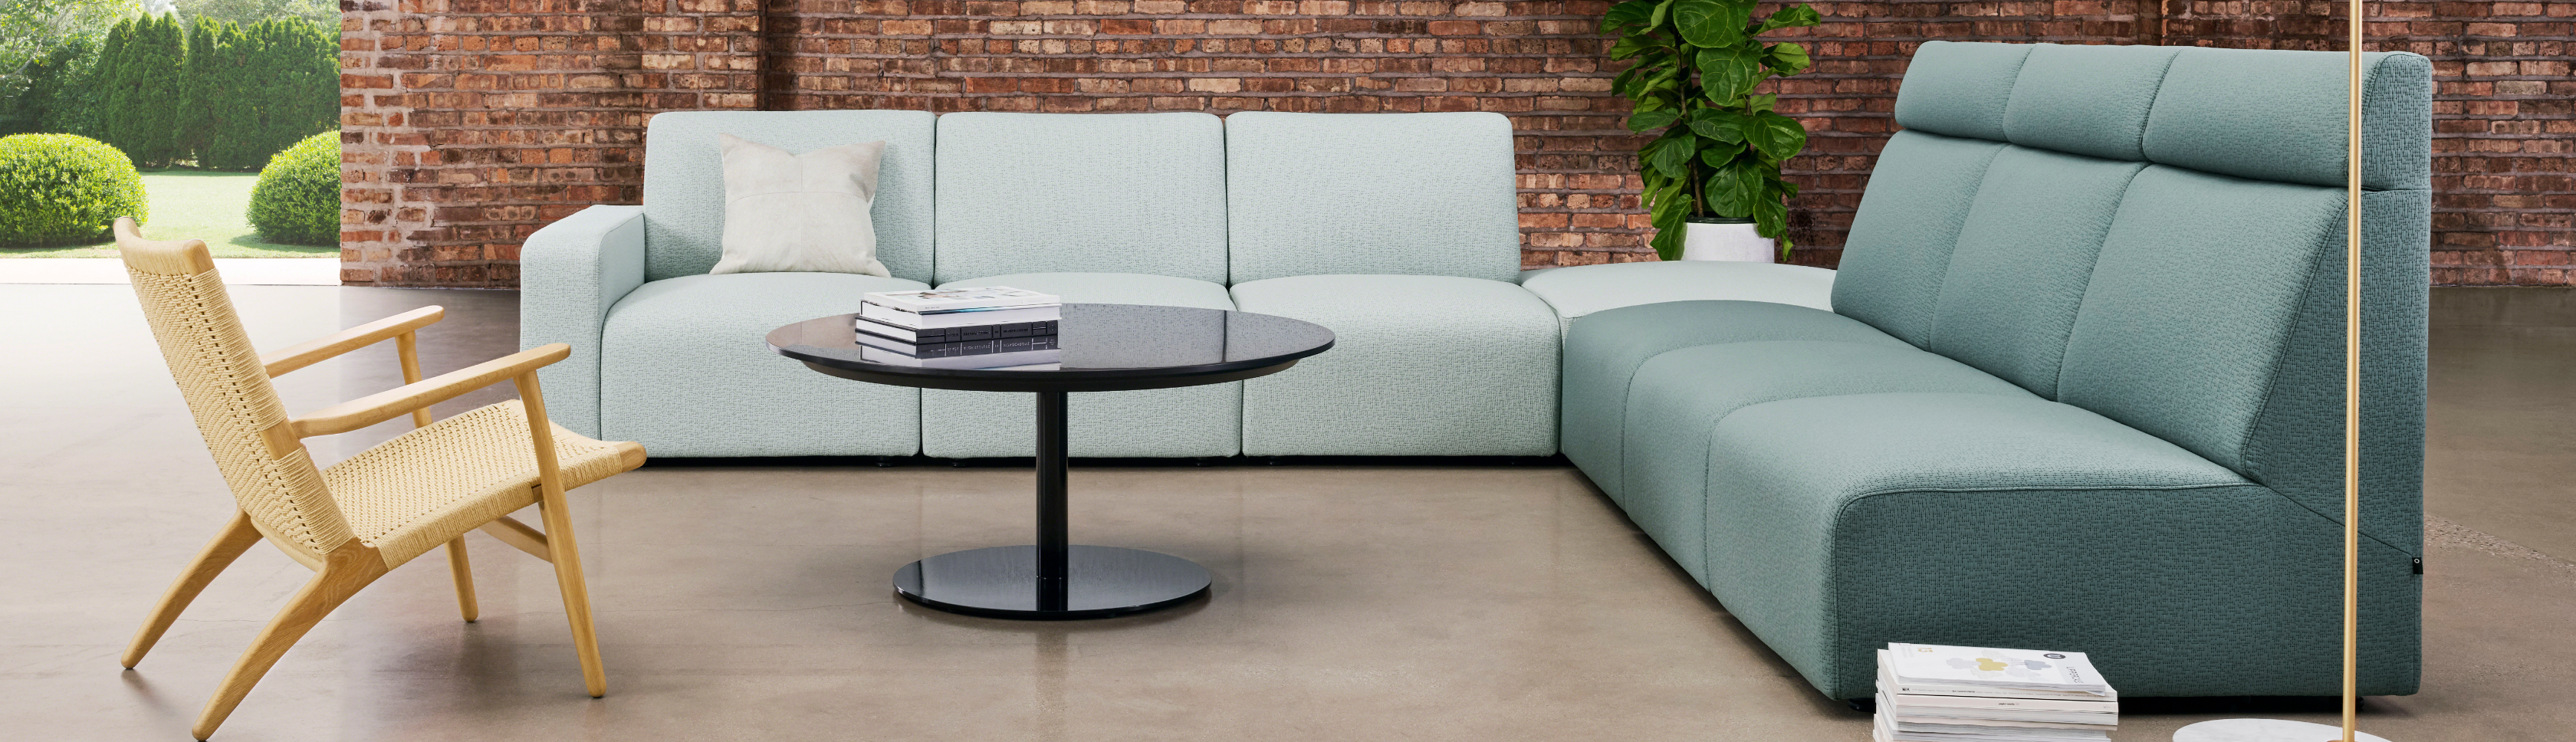 Blue office corner sofa in outdoor lounge space with mirrored black coffee table and wooden side chair